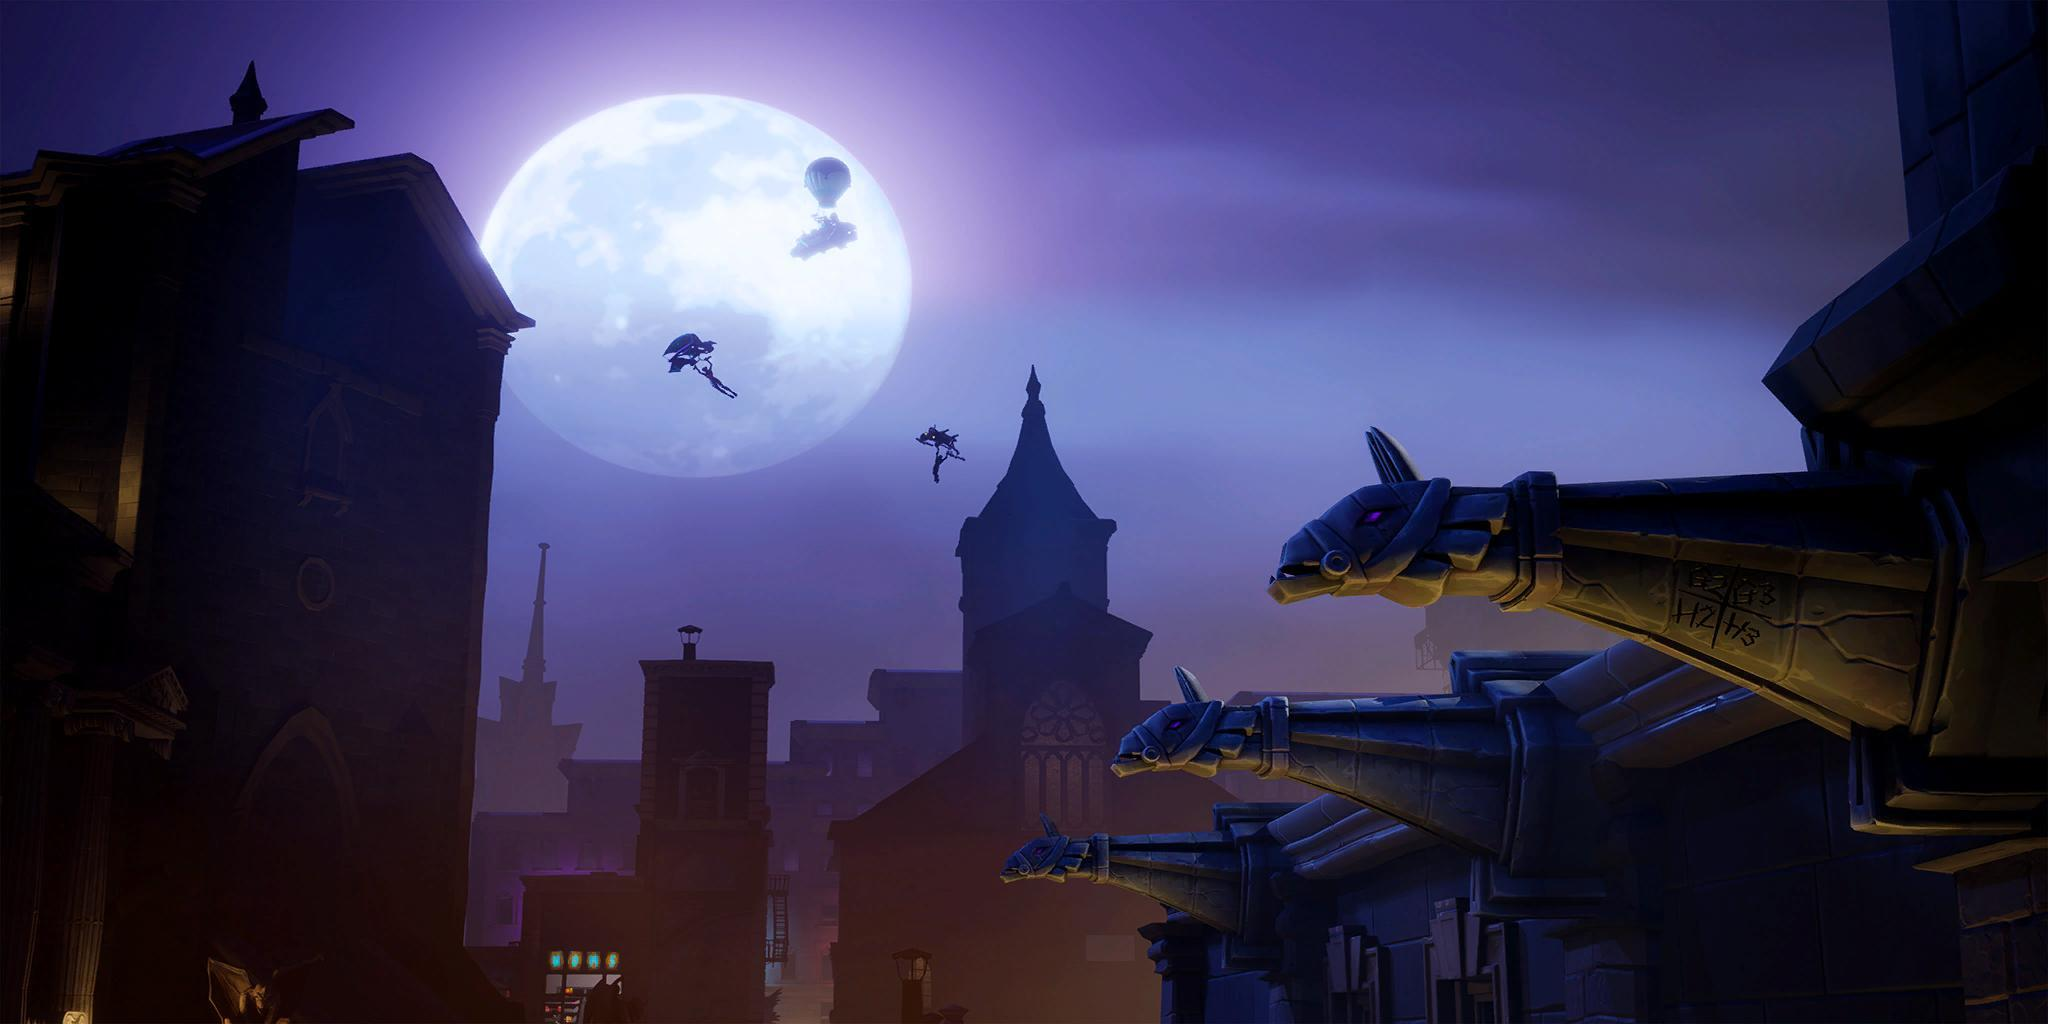 Fortnite dataminers find evidence of Batman collaboration coming soon